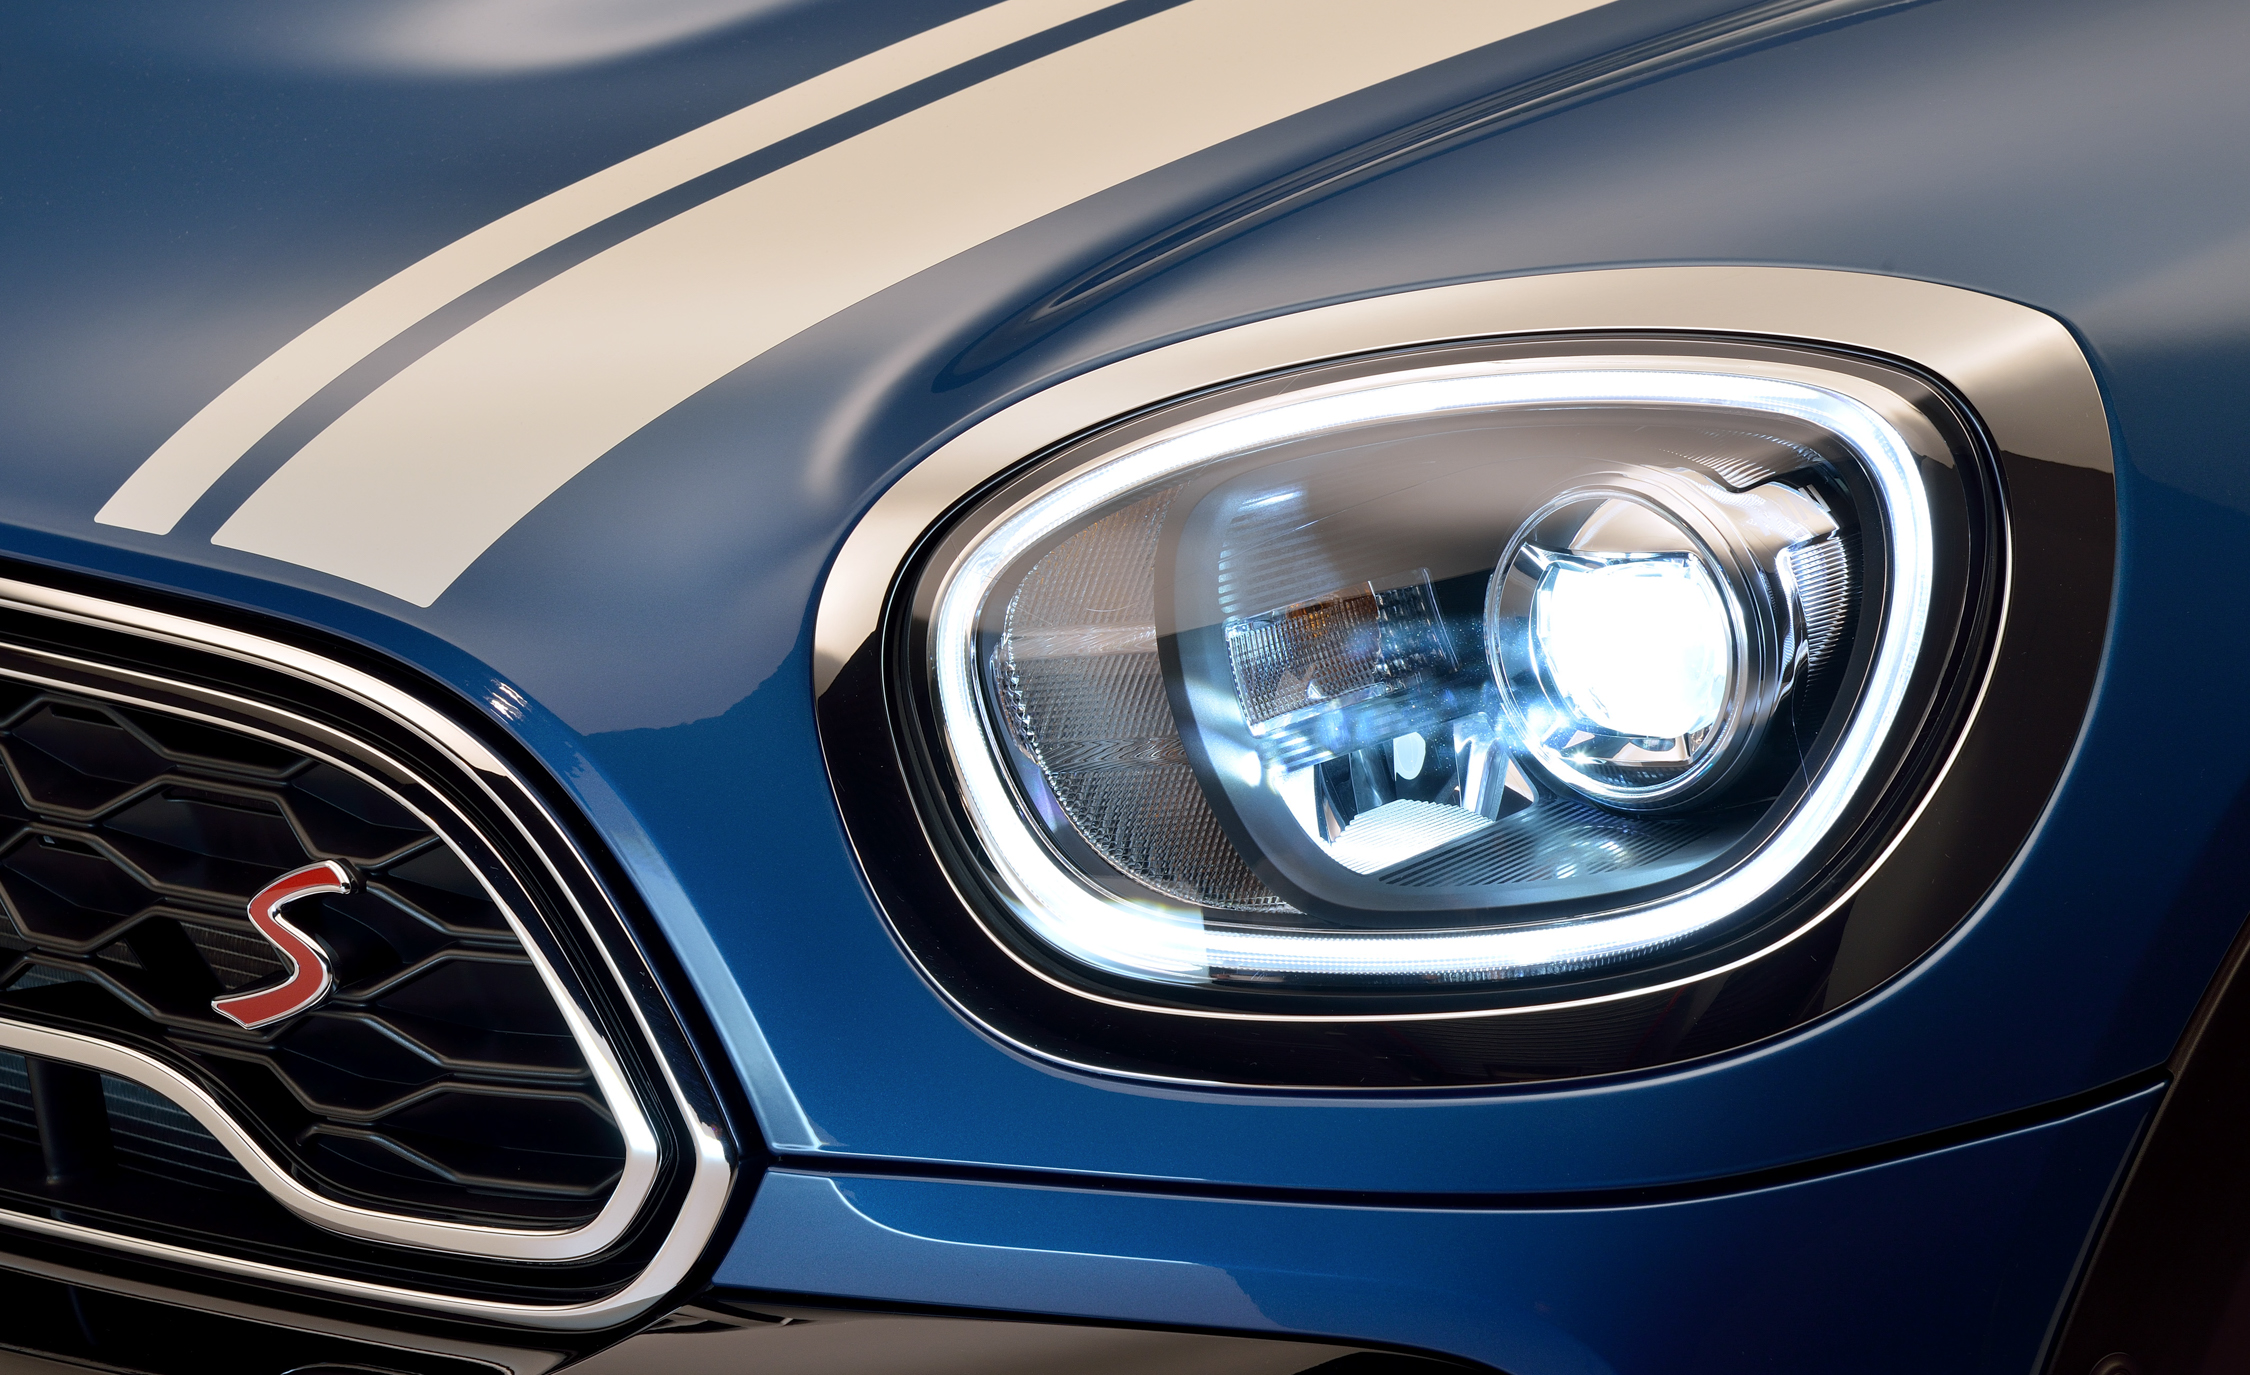 2017 Mini Cooper S Countryman Exterior View Headlight (Photo 10 of 61)